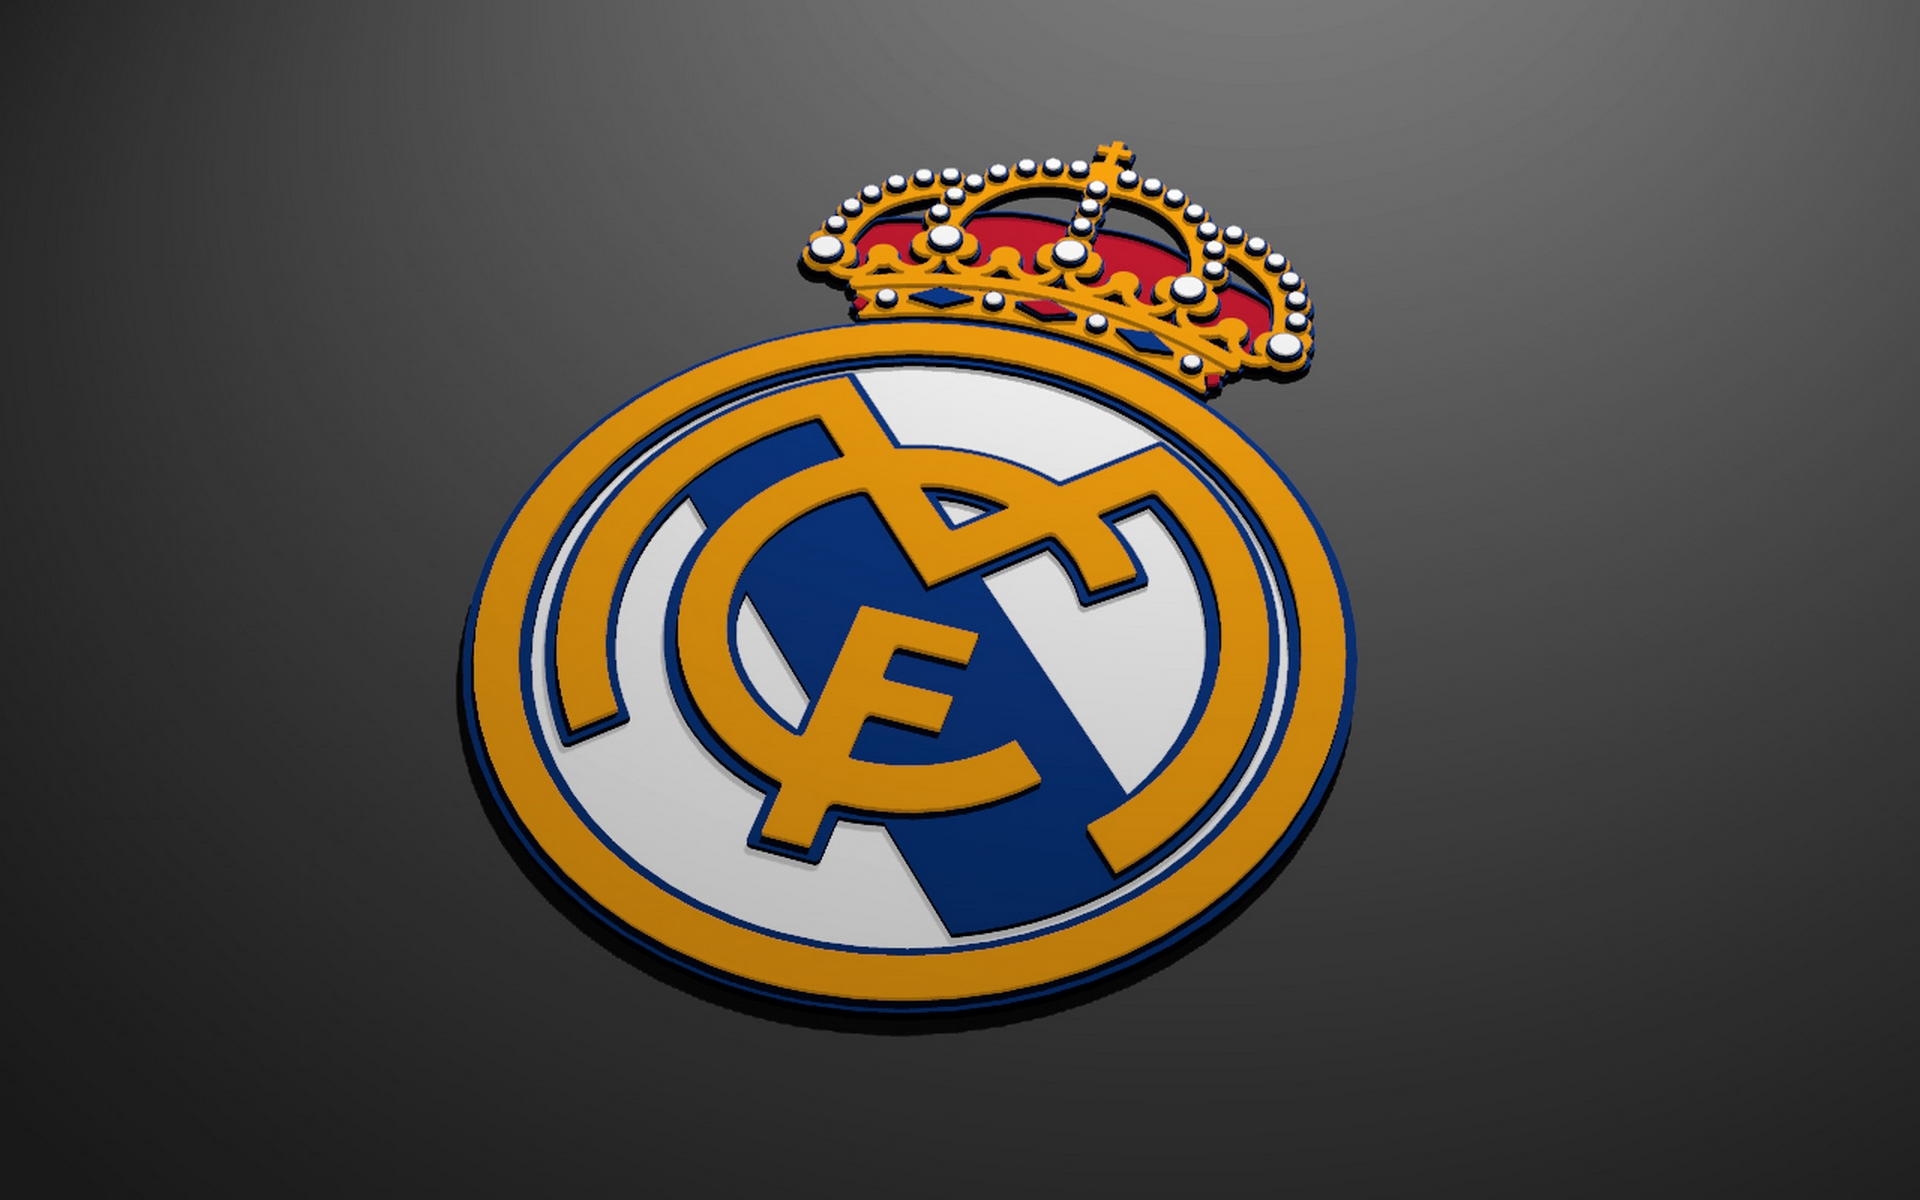 Real Madrid C Logo Wallpaper Hd Real Madrid 96922 Hd